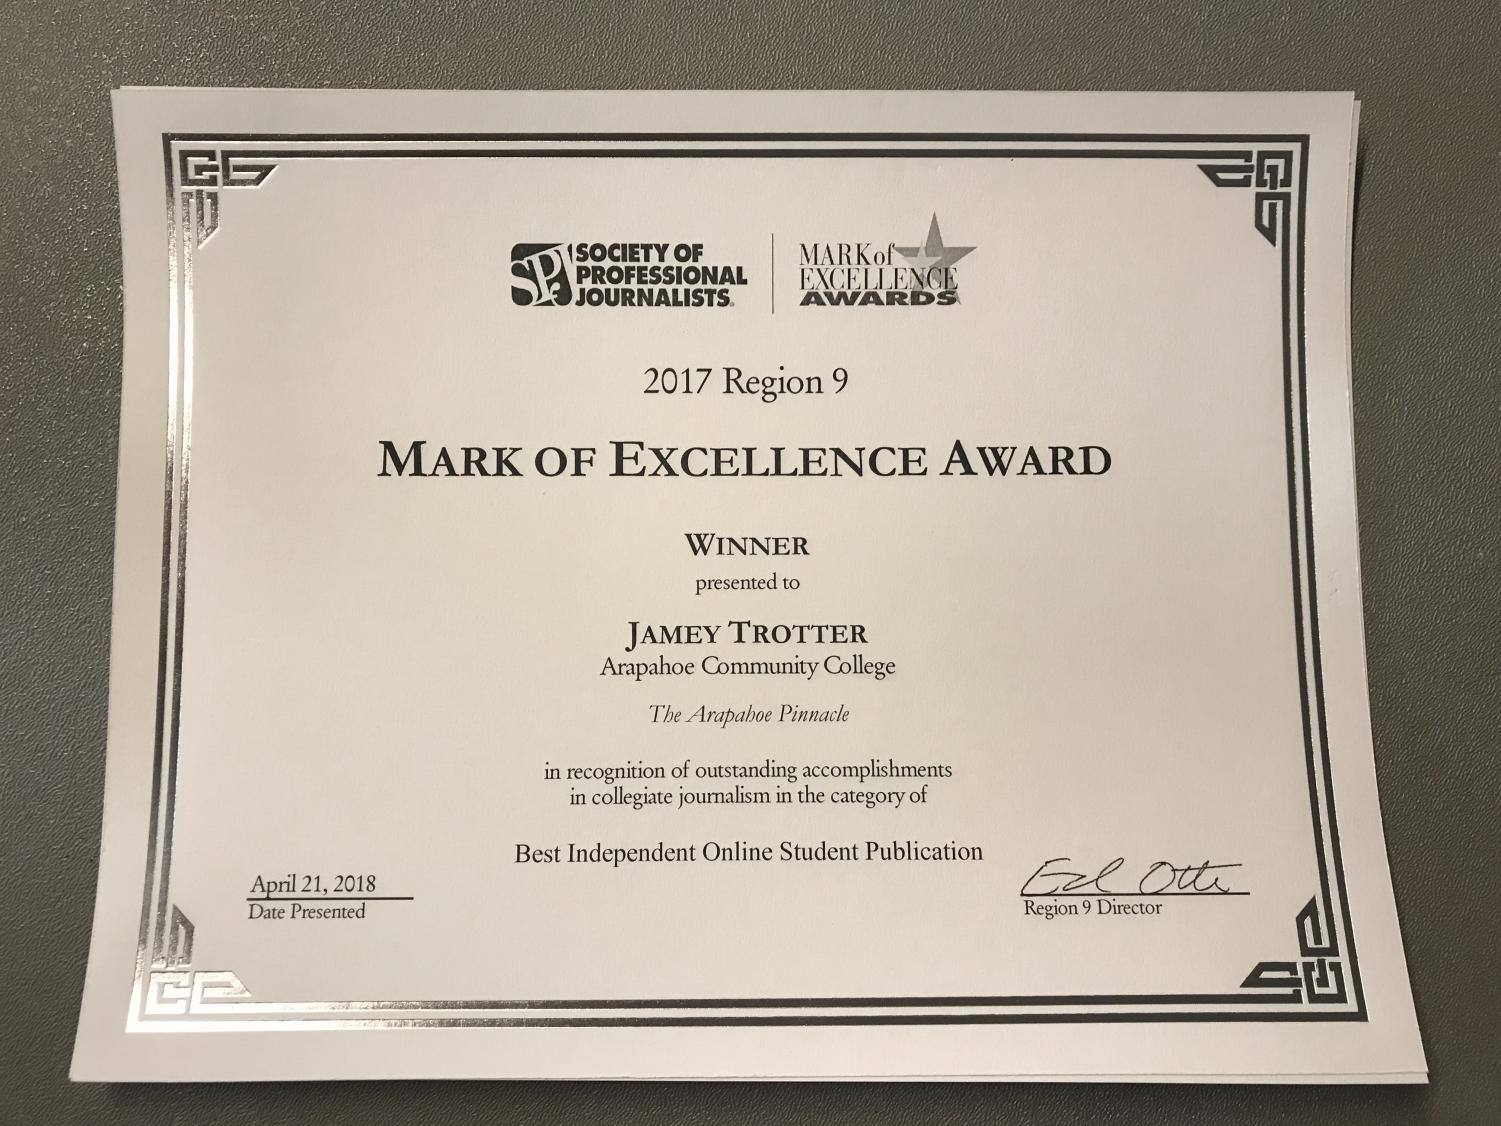 The Arapahor Pinnacle awarded Best Independent Online Student Publication by SPJ.